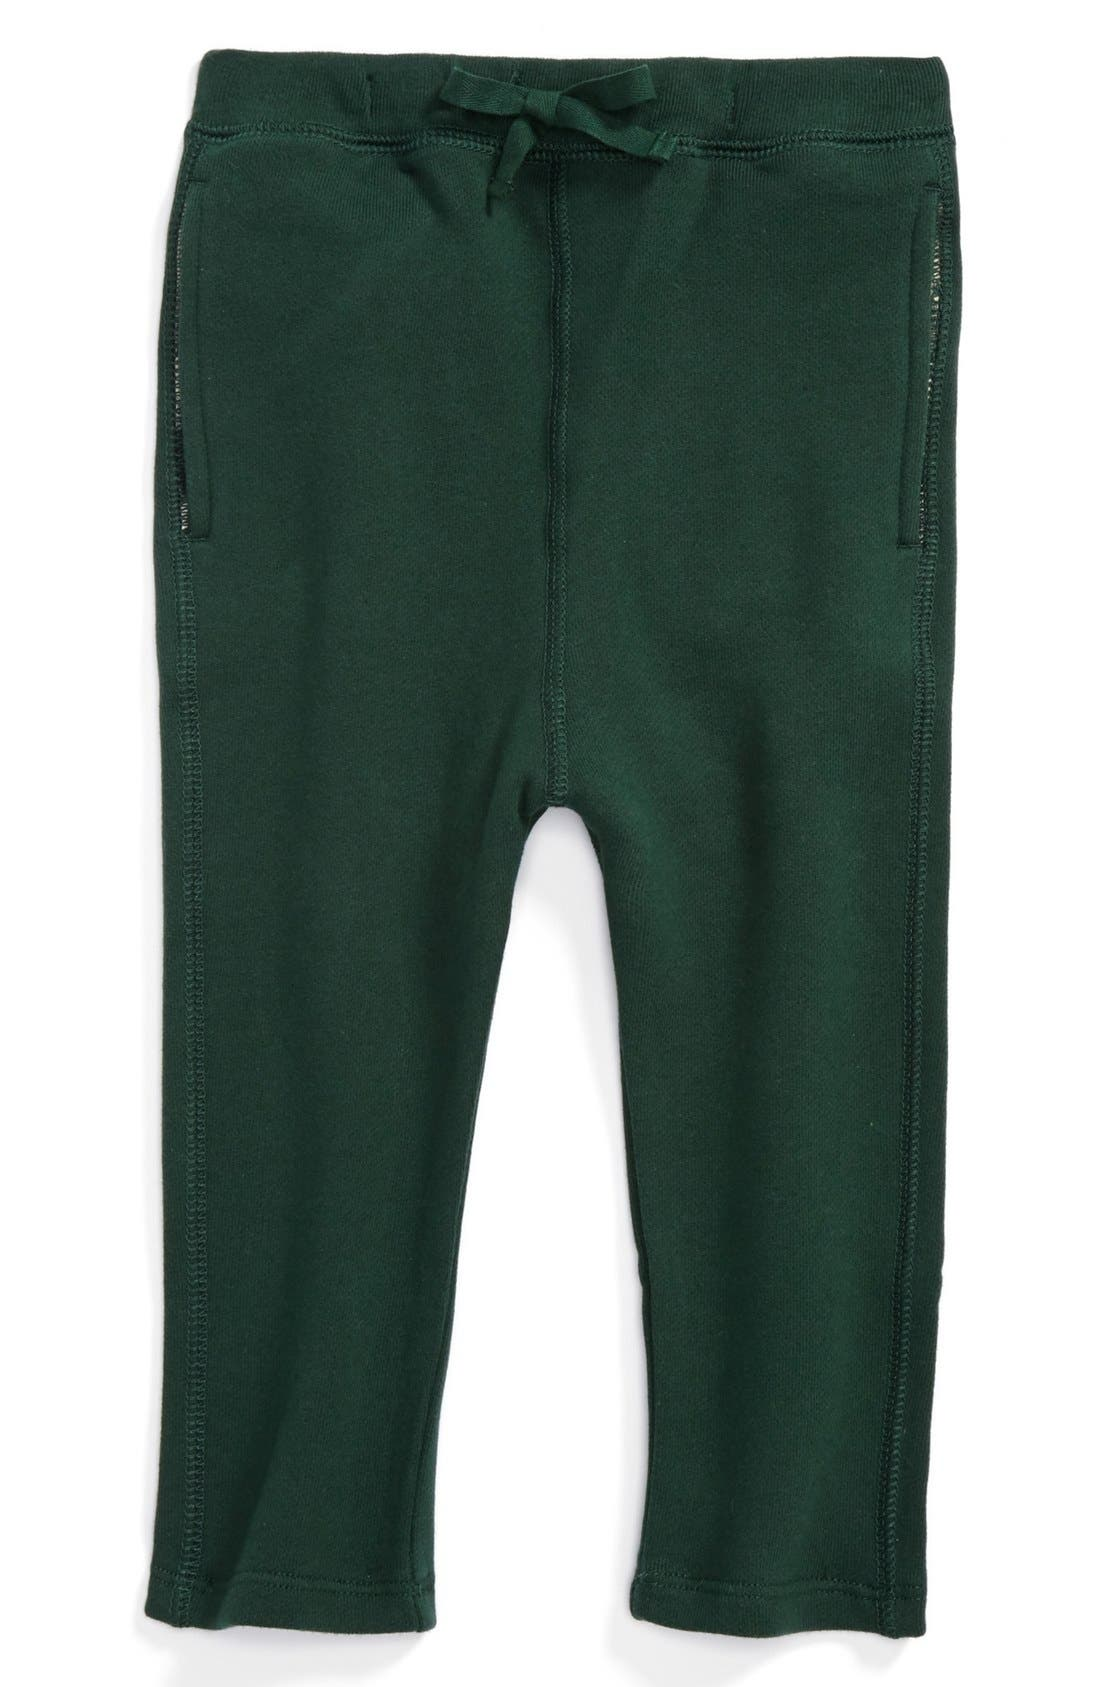 Alternate Image 1 Selected - Burberry 'Elliot' Sweatpants (Toddler Boys)